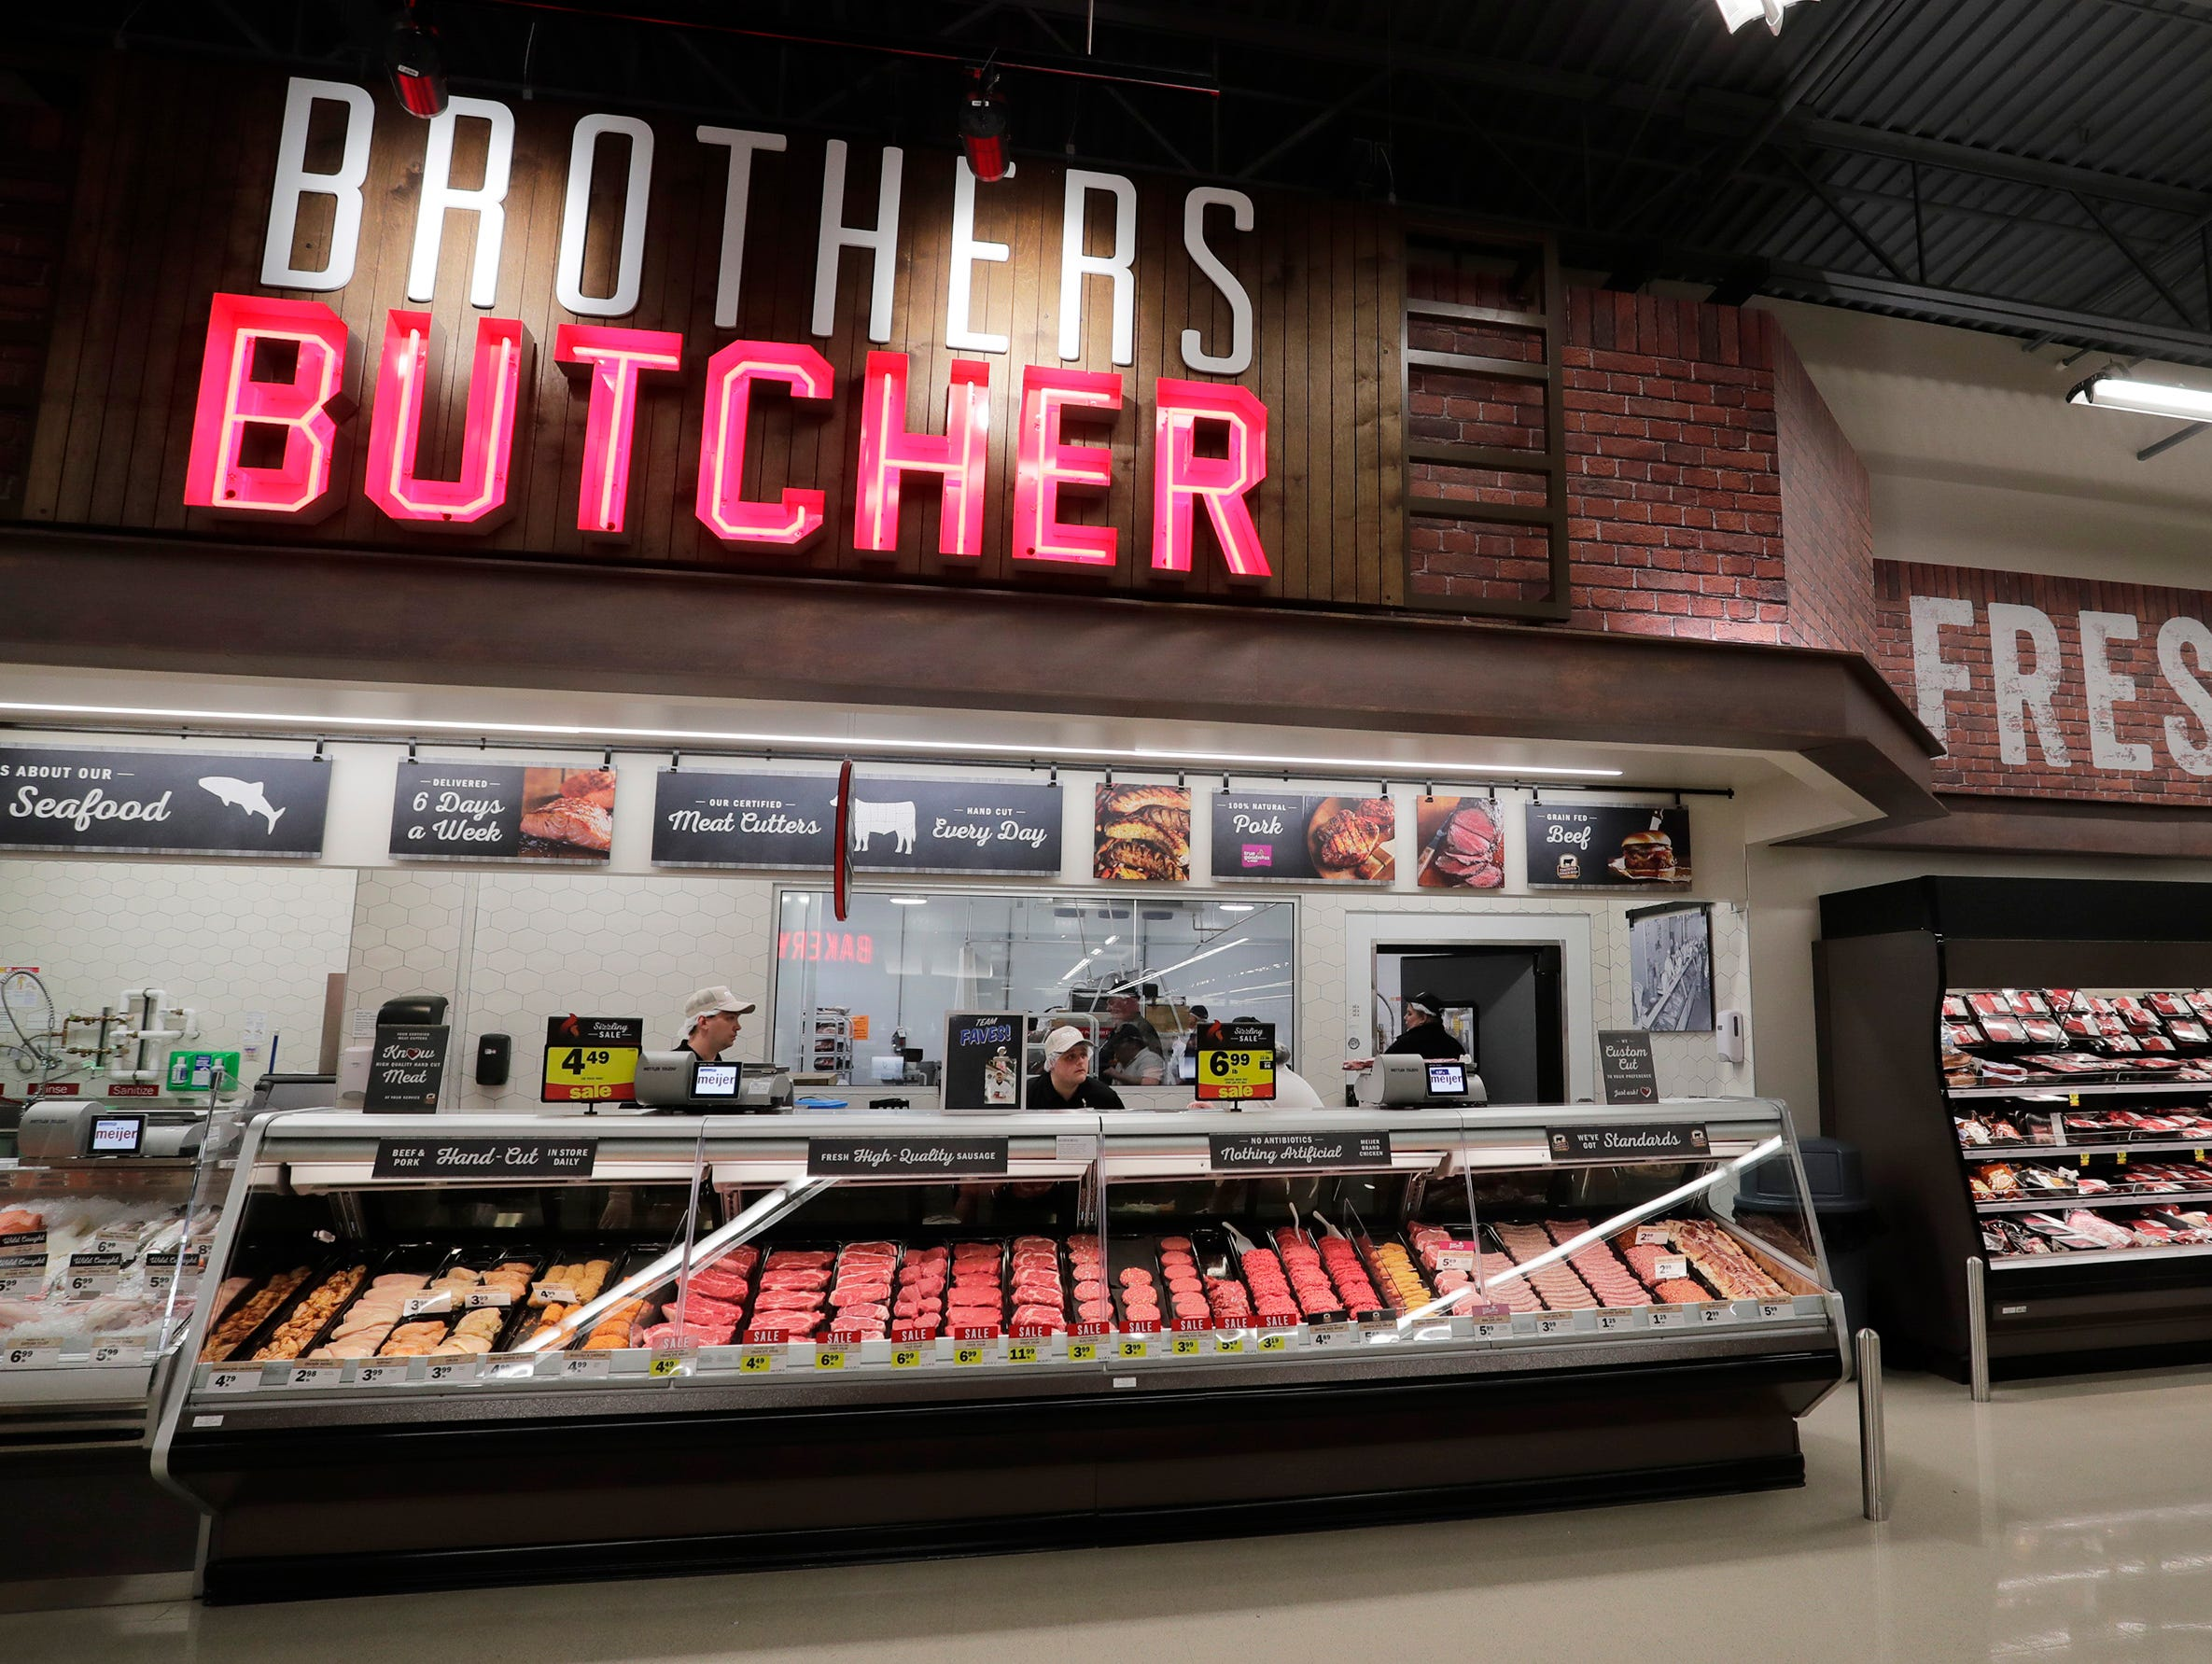 The meat area at Meijer, Thursday April 25, 2019, in Sheboygan, Wis. The 155,000-square-foot supercenter has 300 employees on opening day.